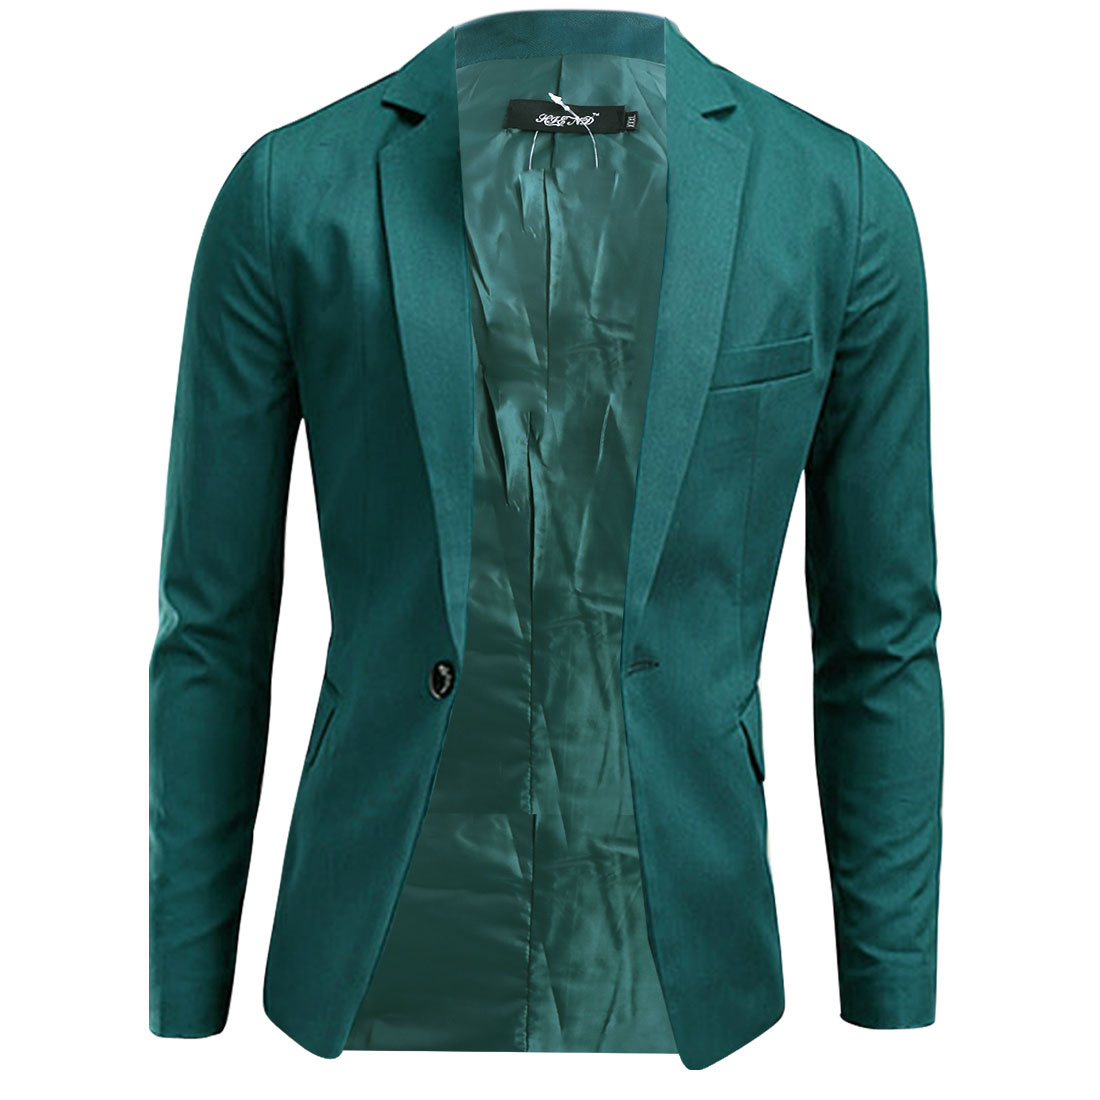 Chic Dark Green Slim Fit One-Button Closure Blazer Jacket for Man M